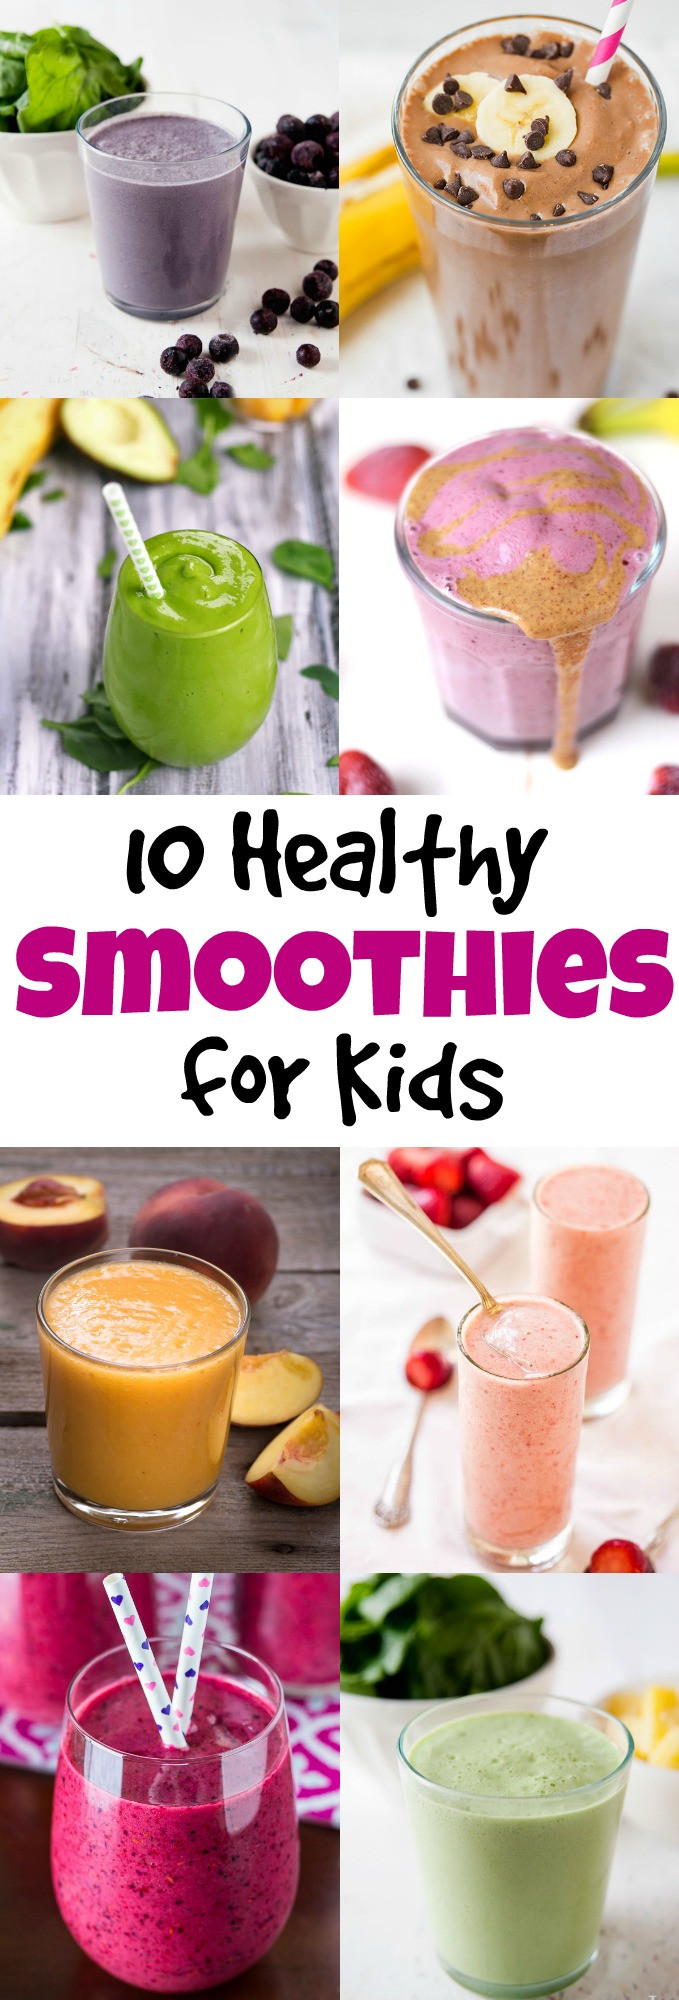 Healthy Smoothies For Kids  10 Healthy Smoothies for Kids MOMables Good Food